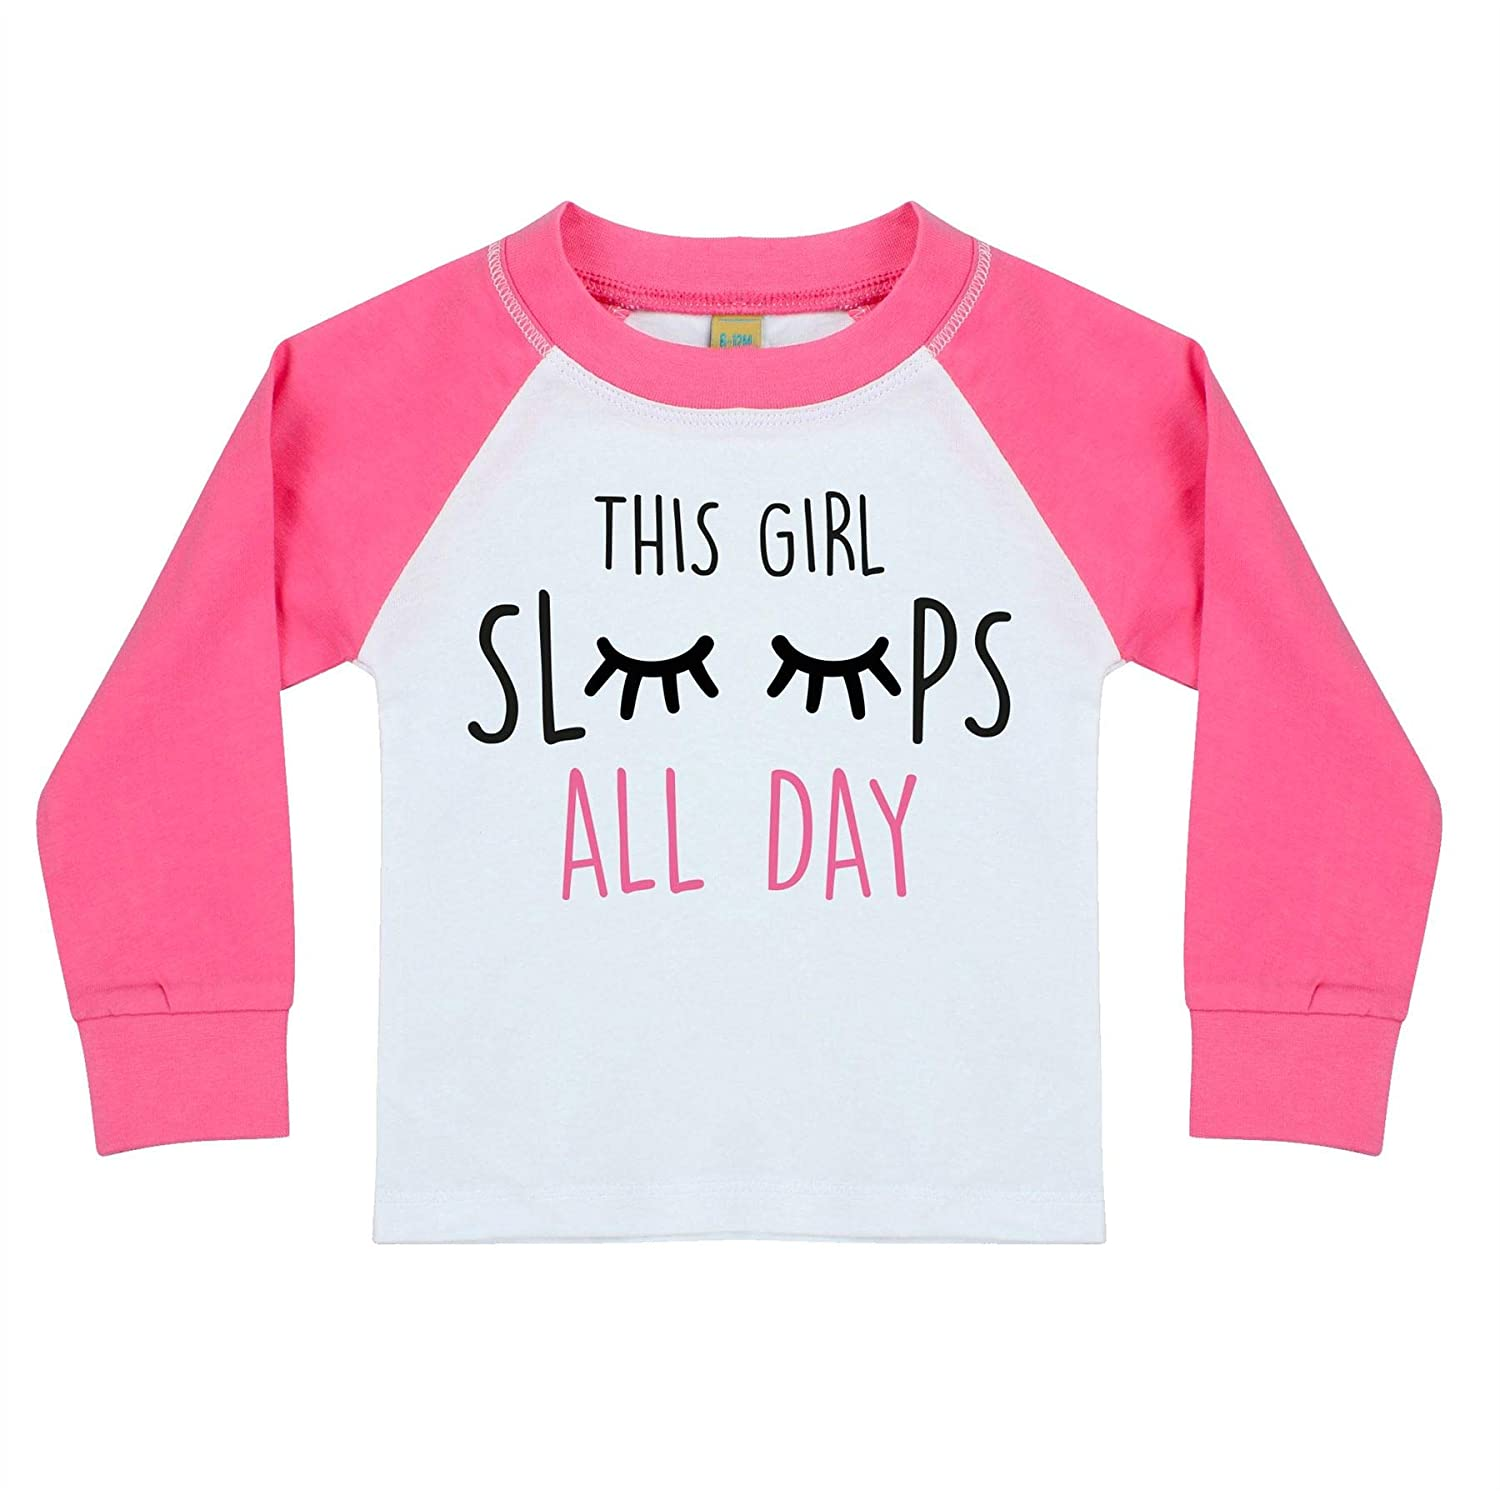 This Girl Sleeps All Day Girls Snuggle Fit Pyjamas London Co